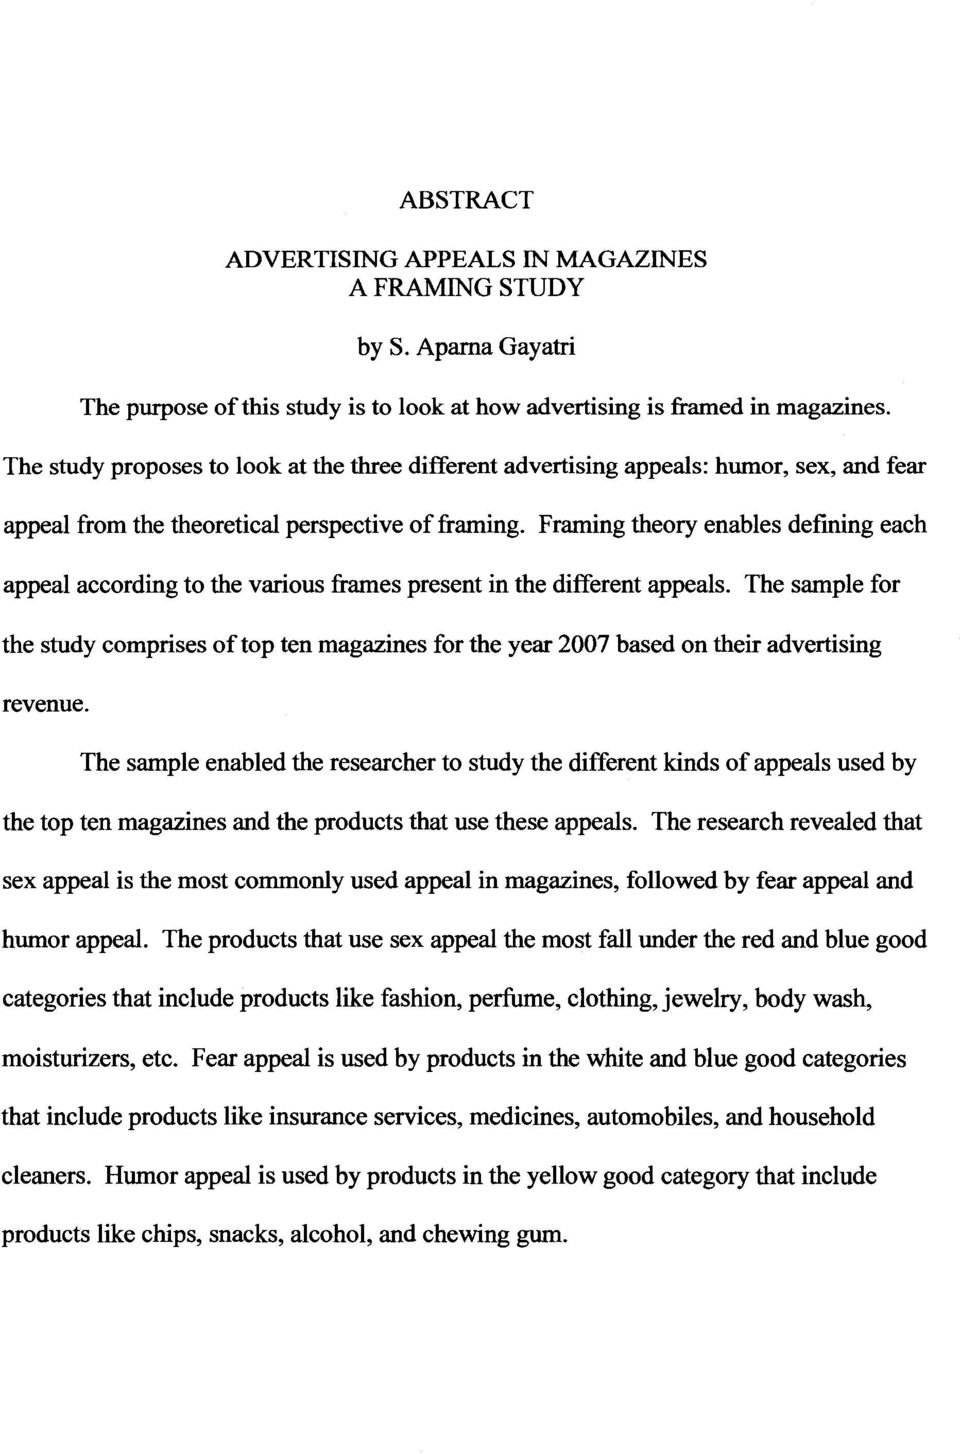 Advertising appeals in magazine : a framing study - PDF